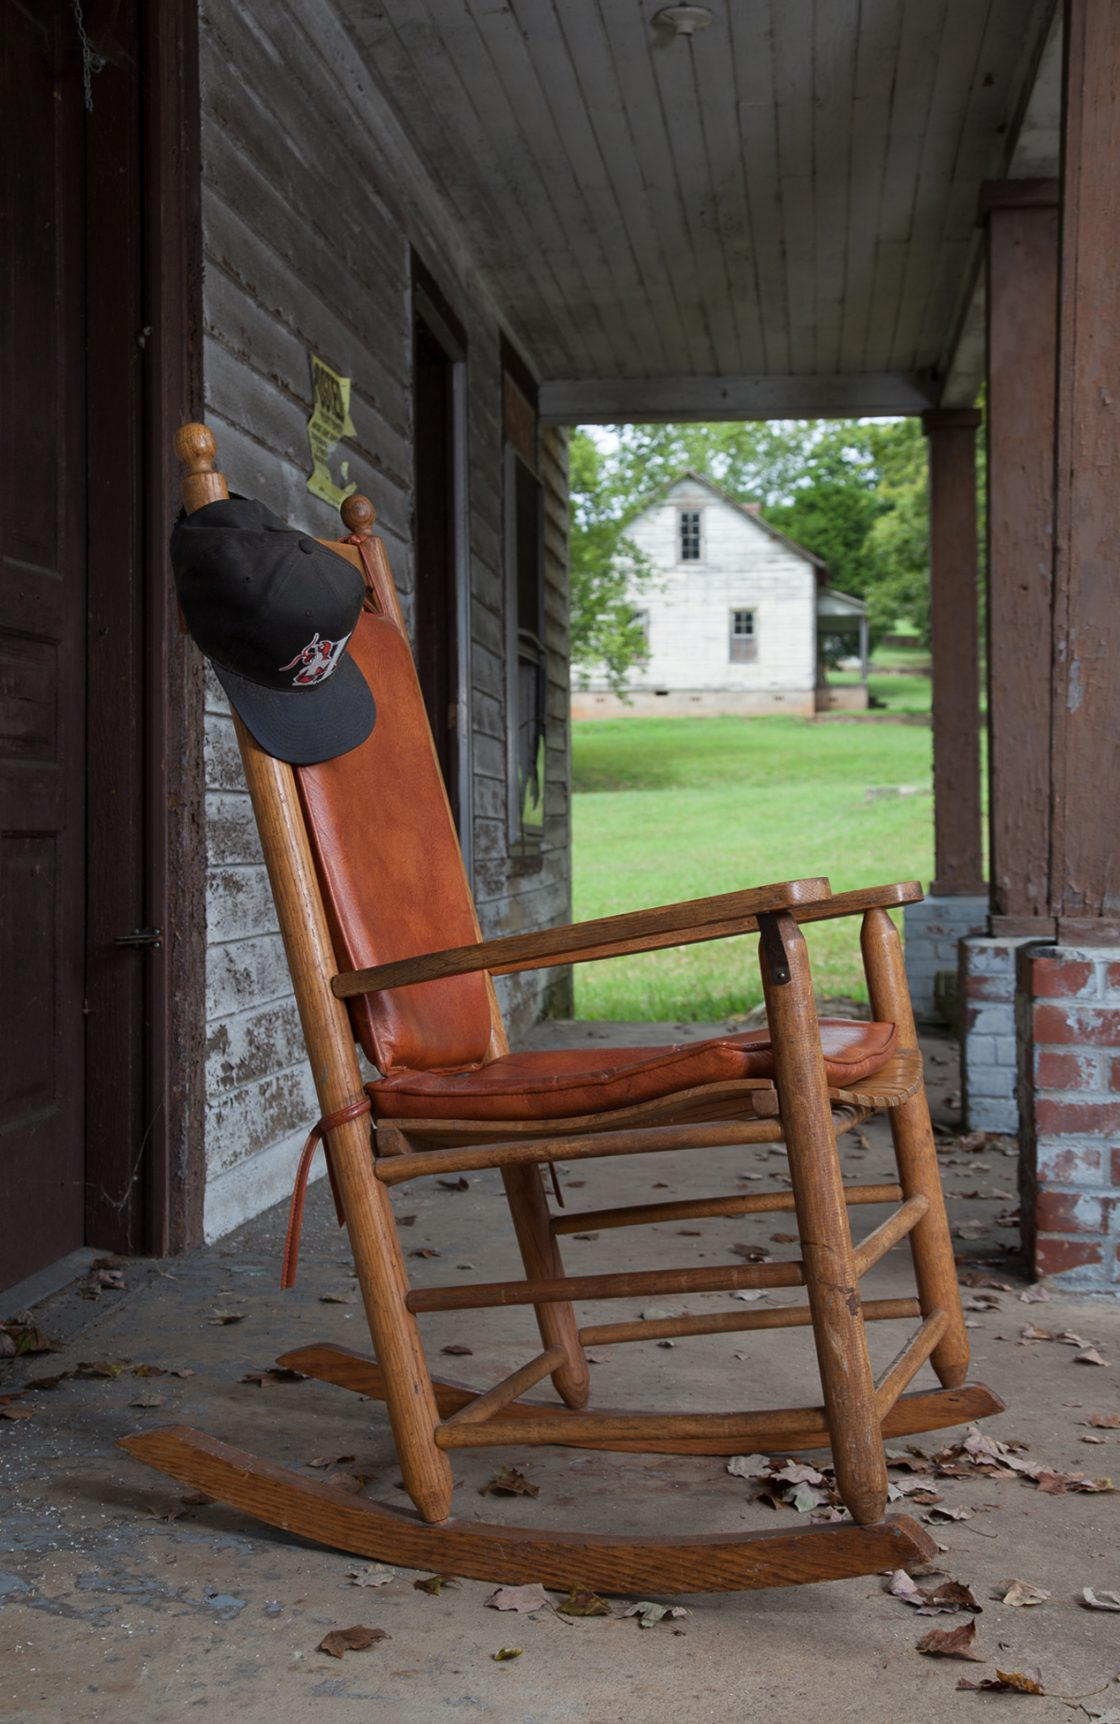 Wondrous Rocking Chair Theater Foothills Digest Ocoug Best Dining Table And Chair Ideas Images Ocougorg